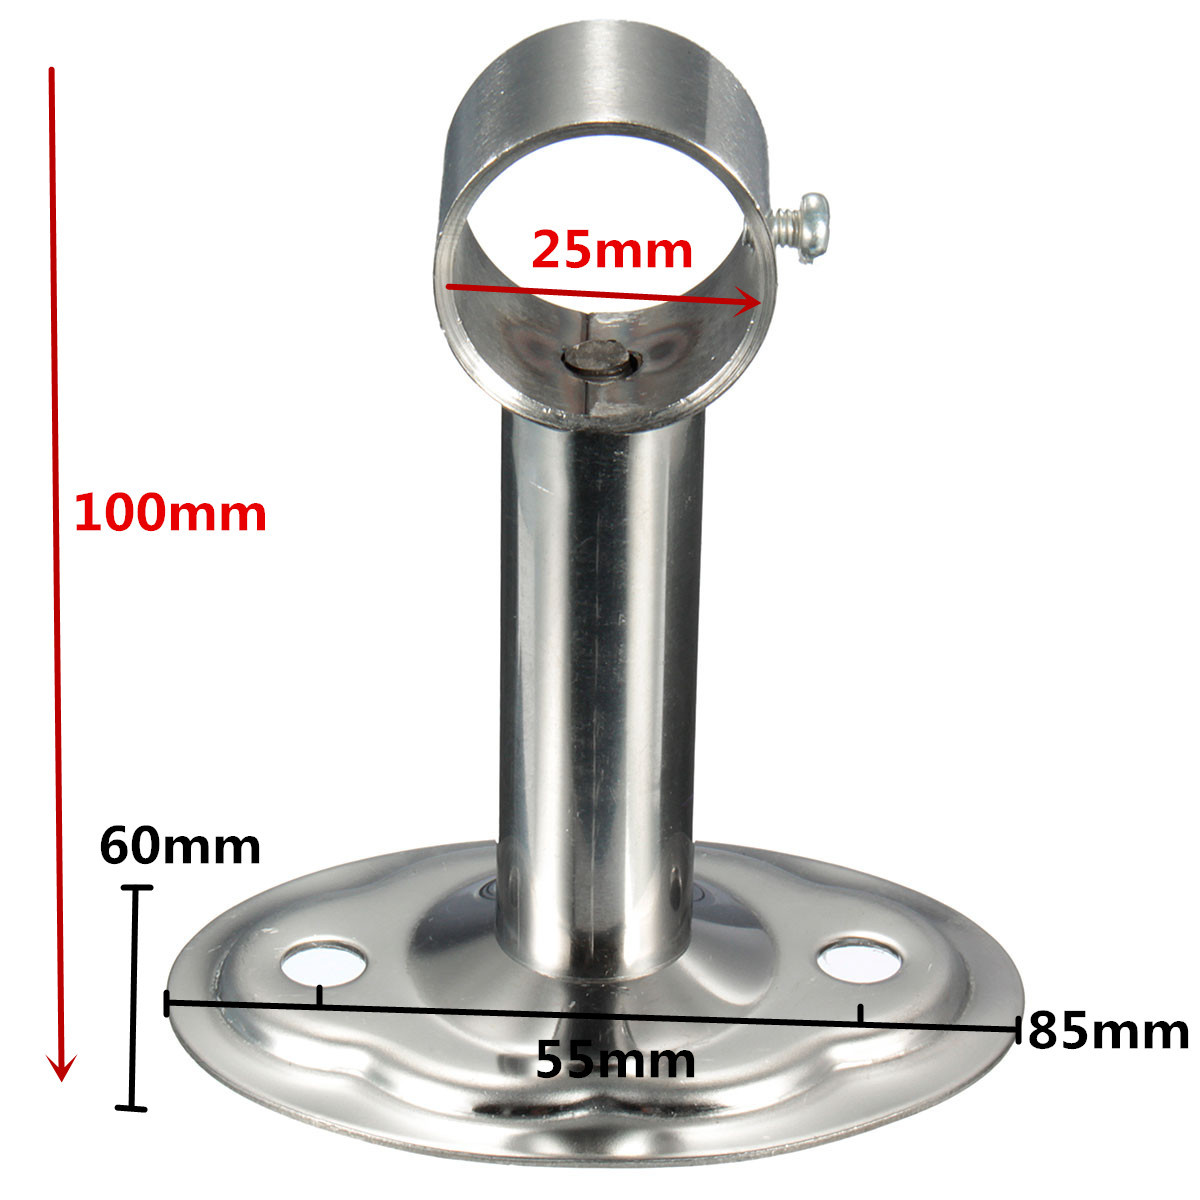 Inch stainless steel pipe support stand tall bracket